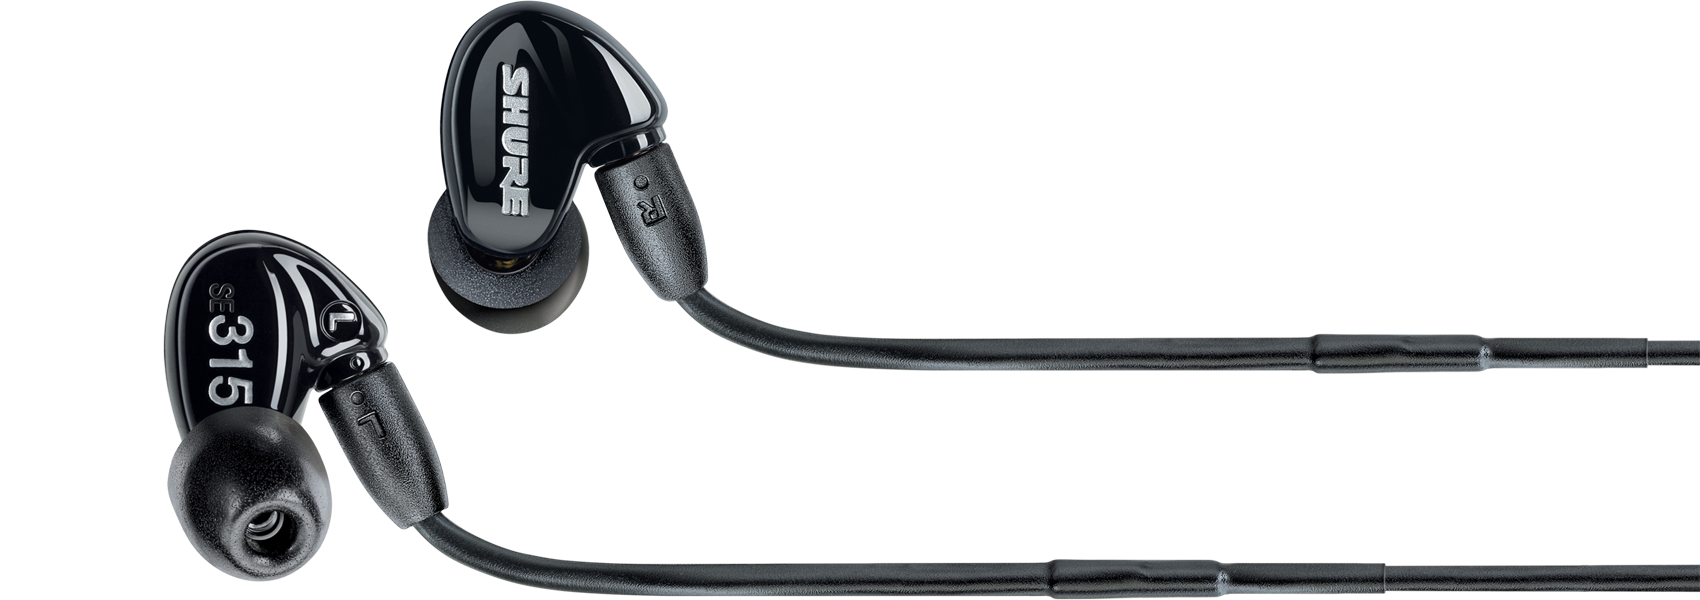 Illustration Shure SE315 Sound Isolating Earphones